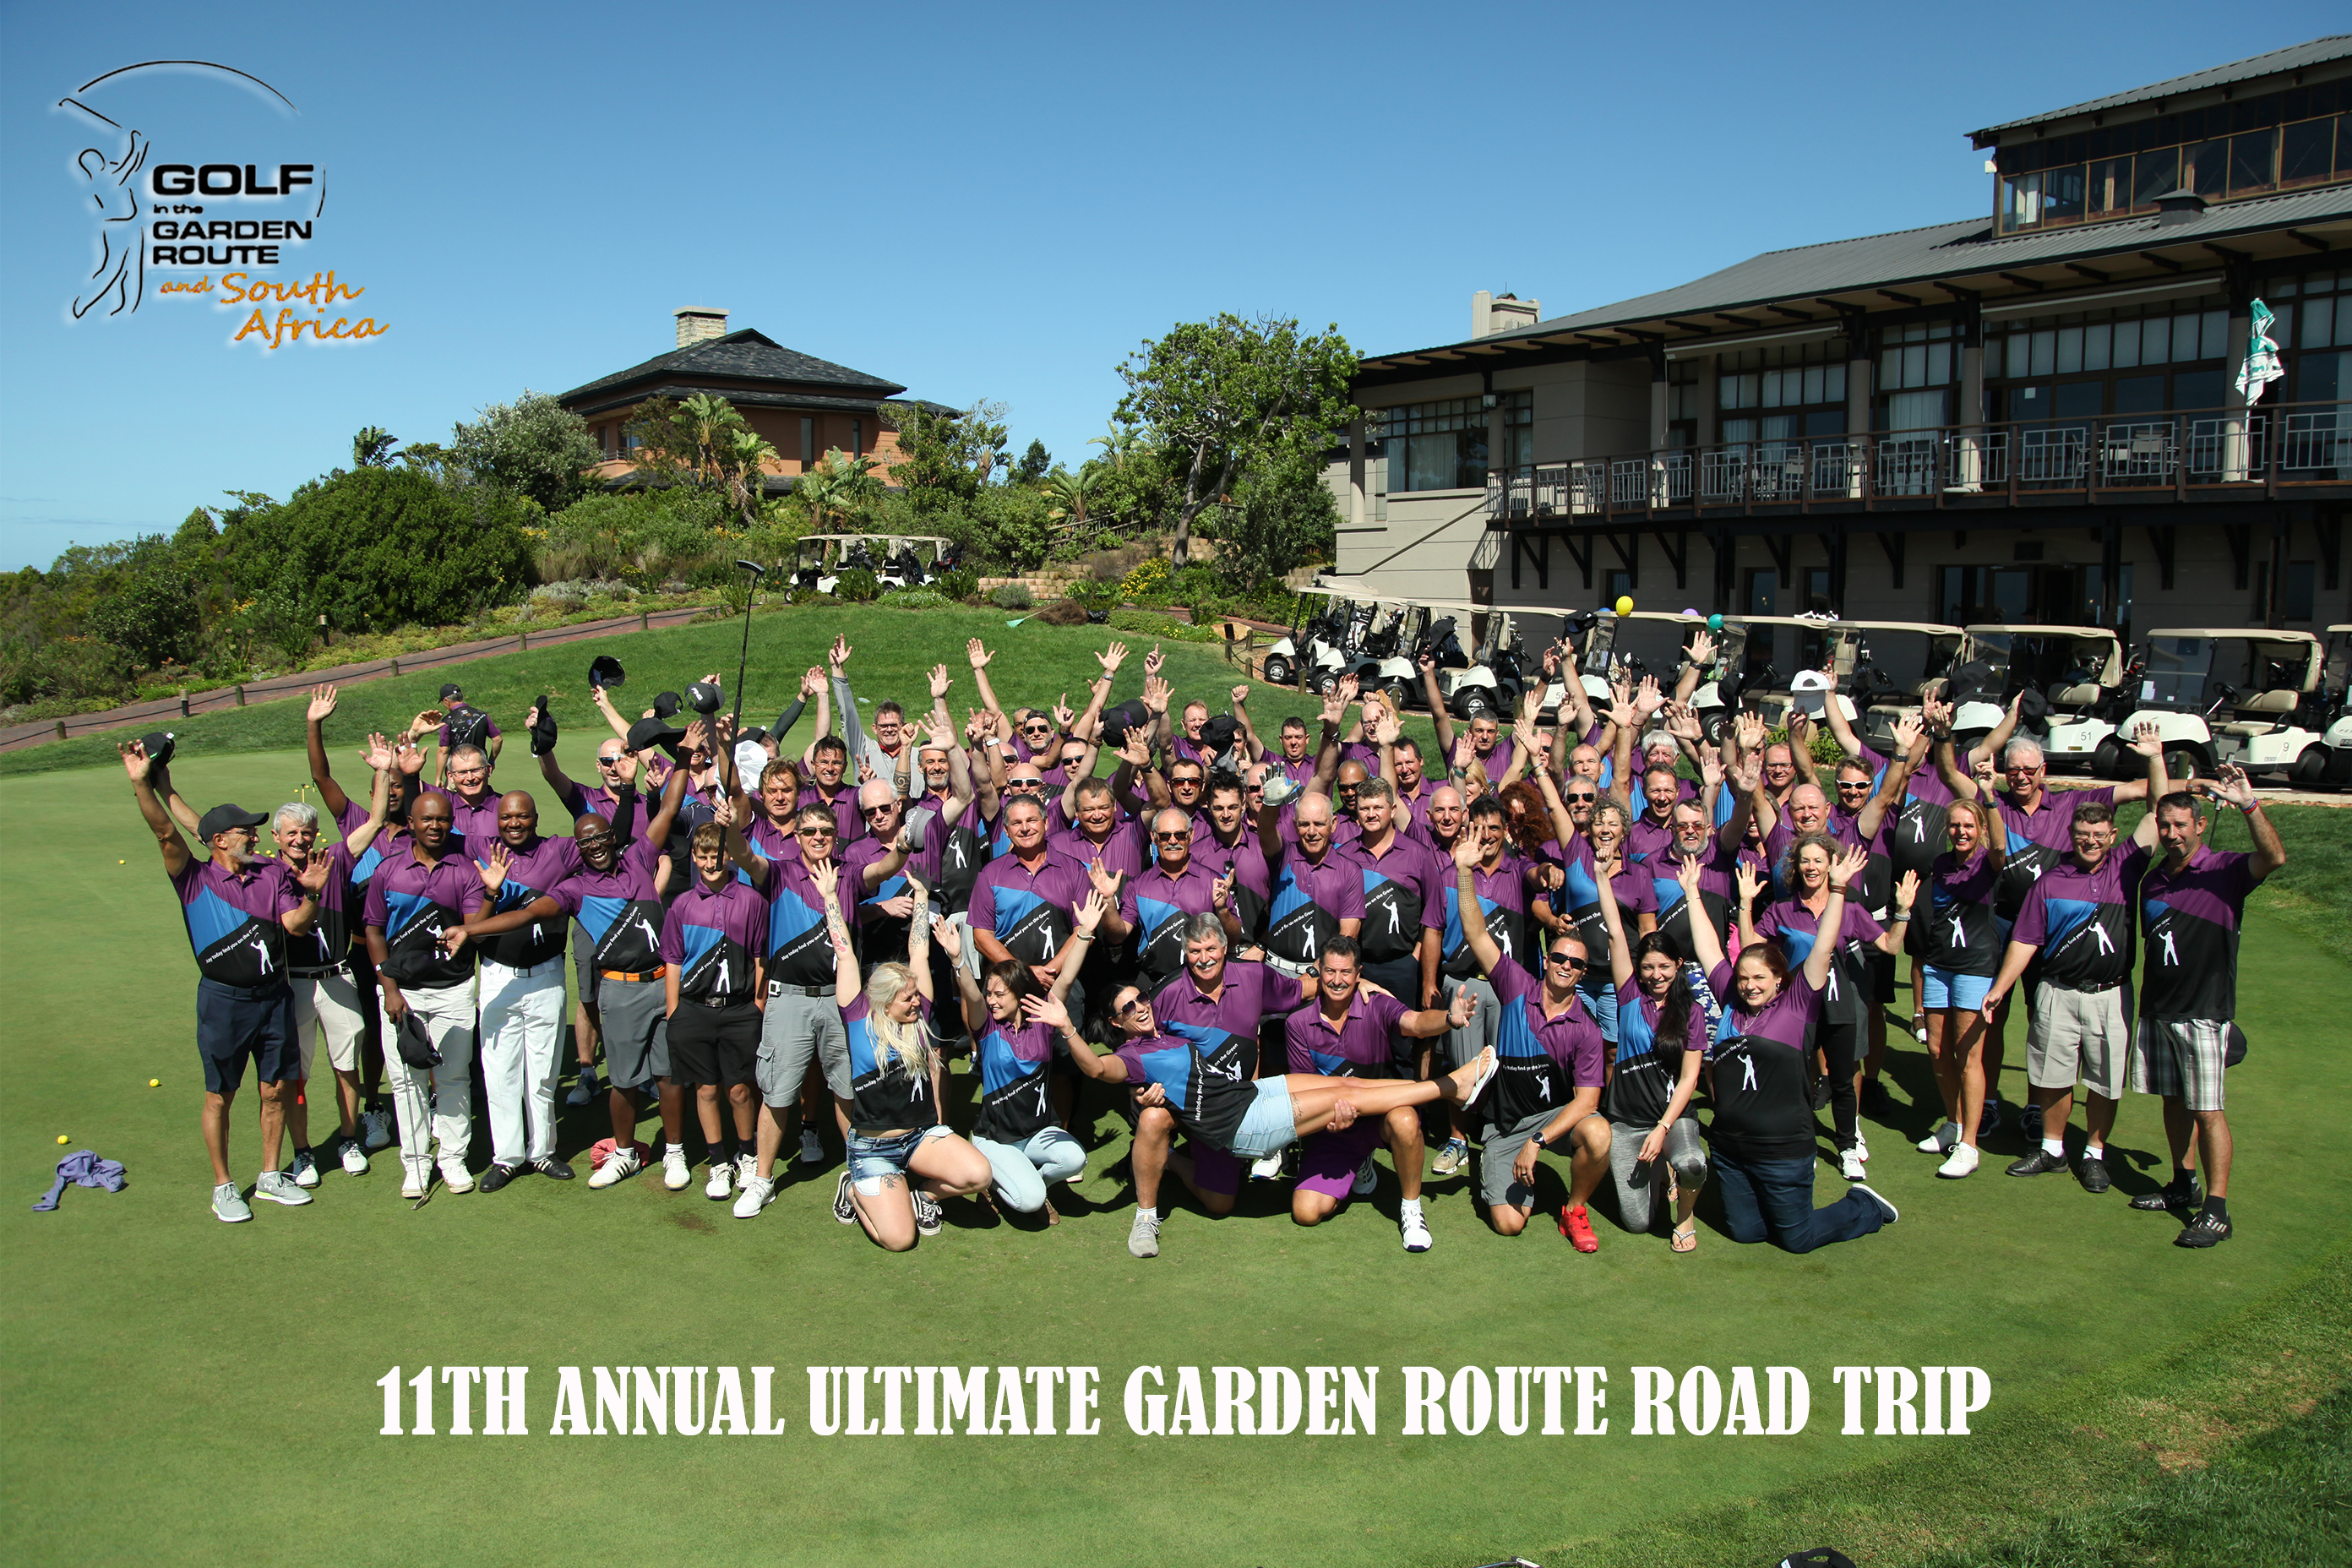 11th ANNUAL ULTIMATE GARDEN ROUTE ROAD TRIP